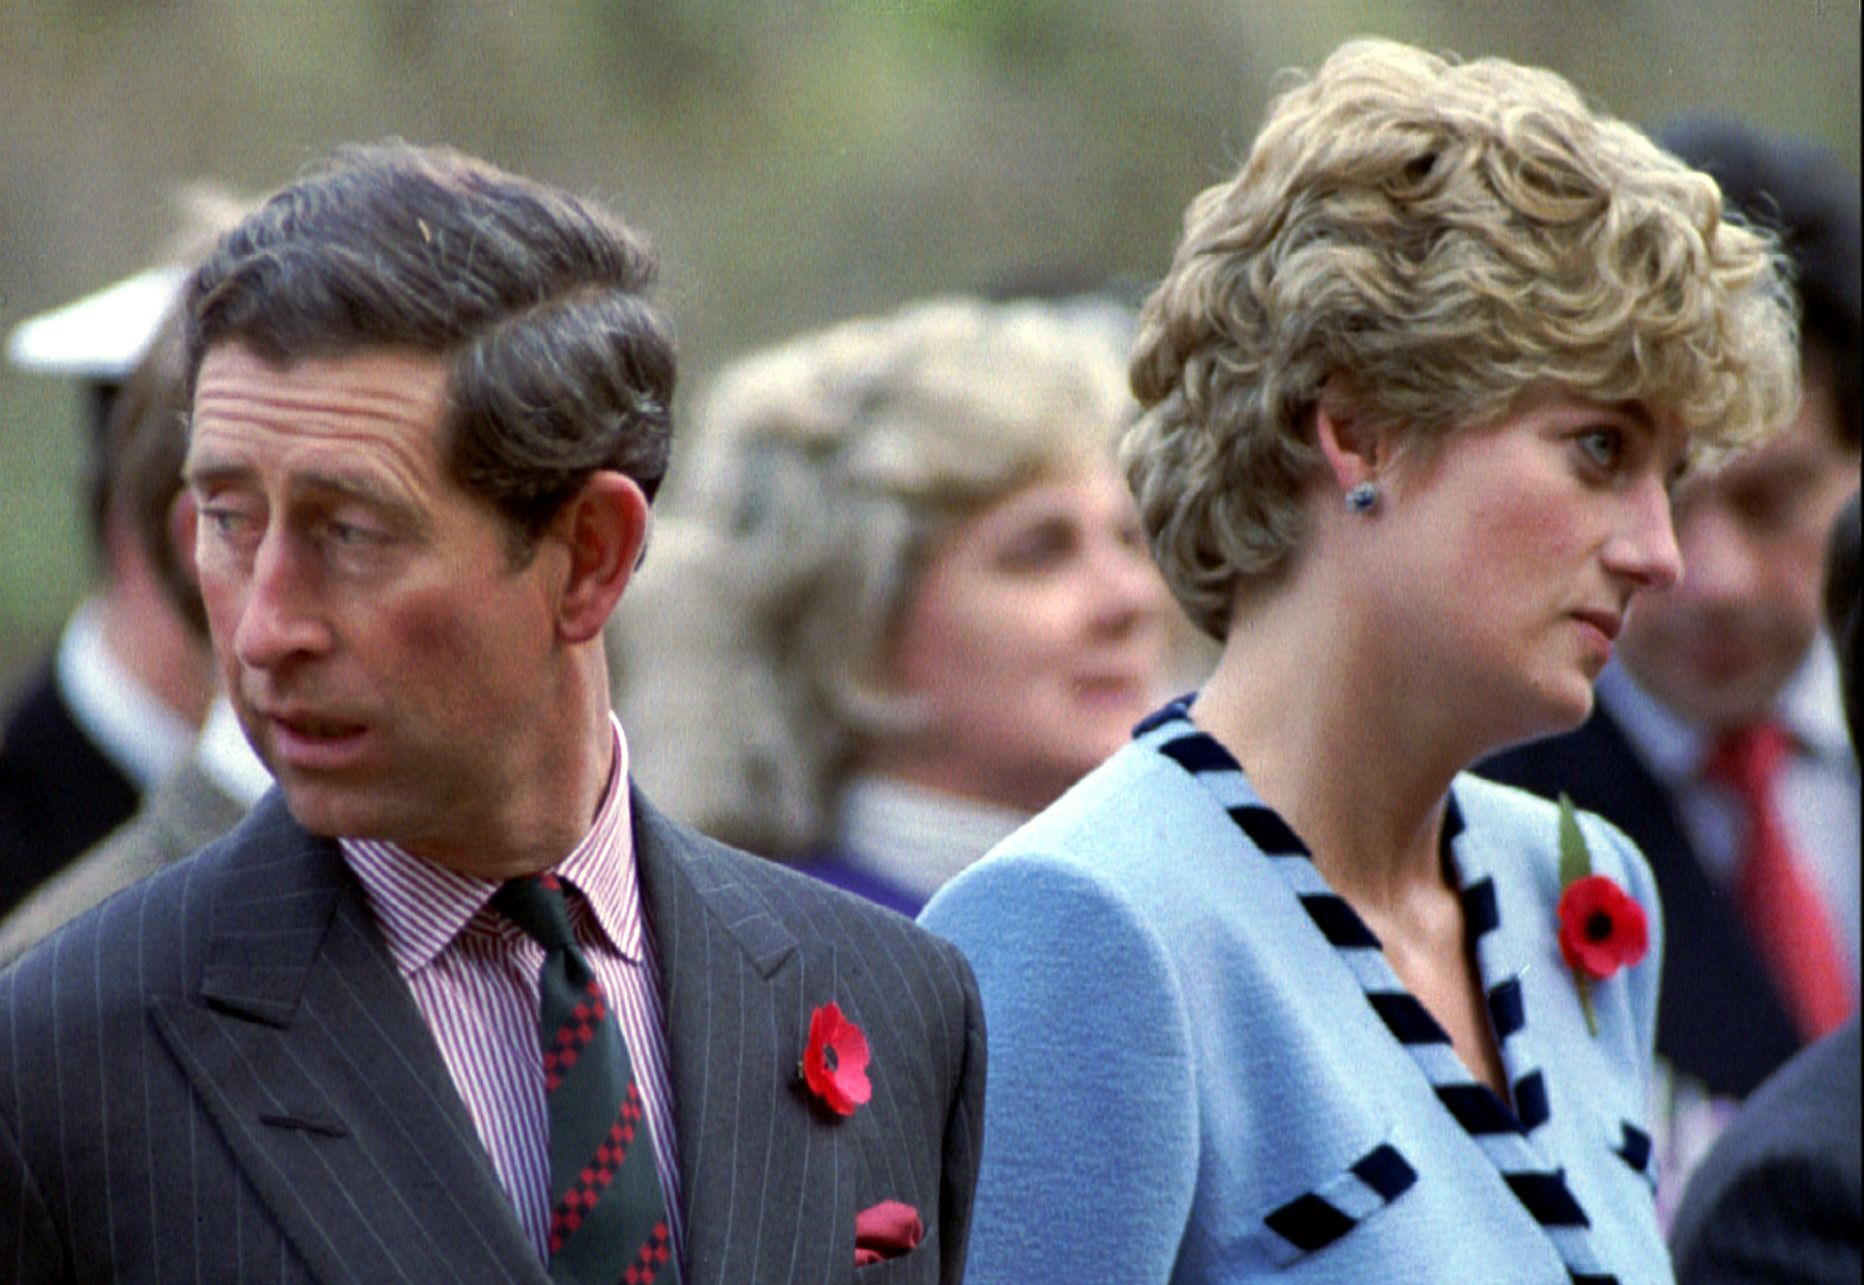 Queen Elizabeth II's Fear for Princess Diana's Mental Health Revealed in New Documentary